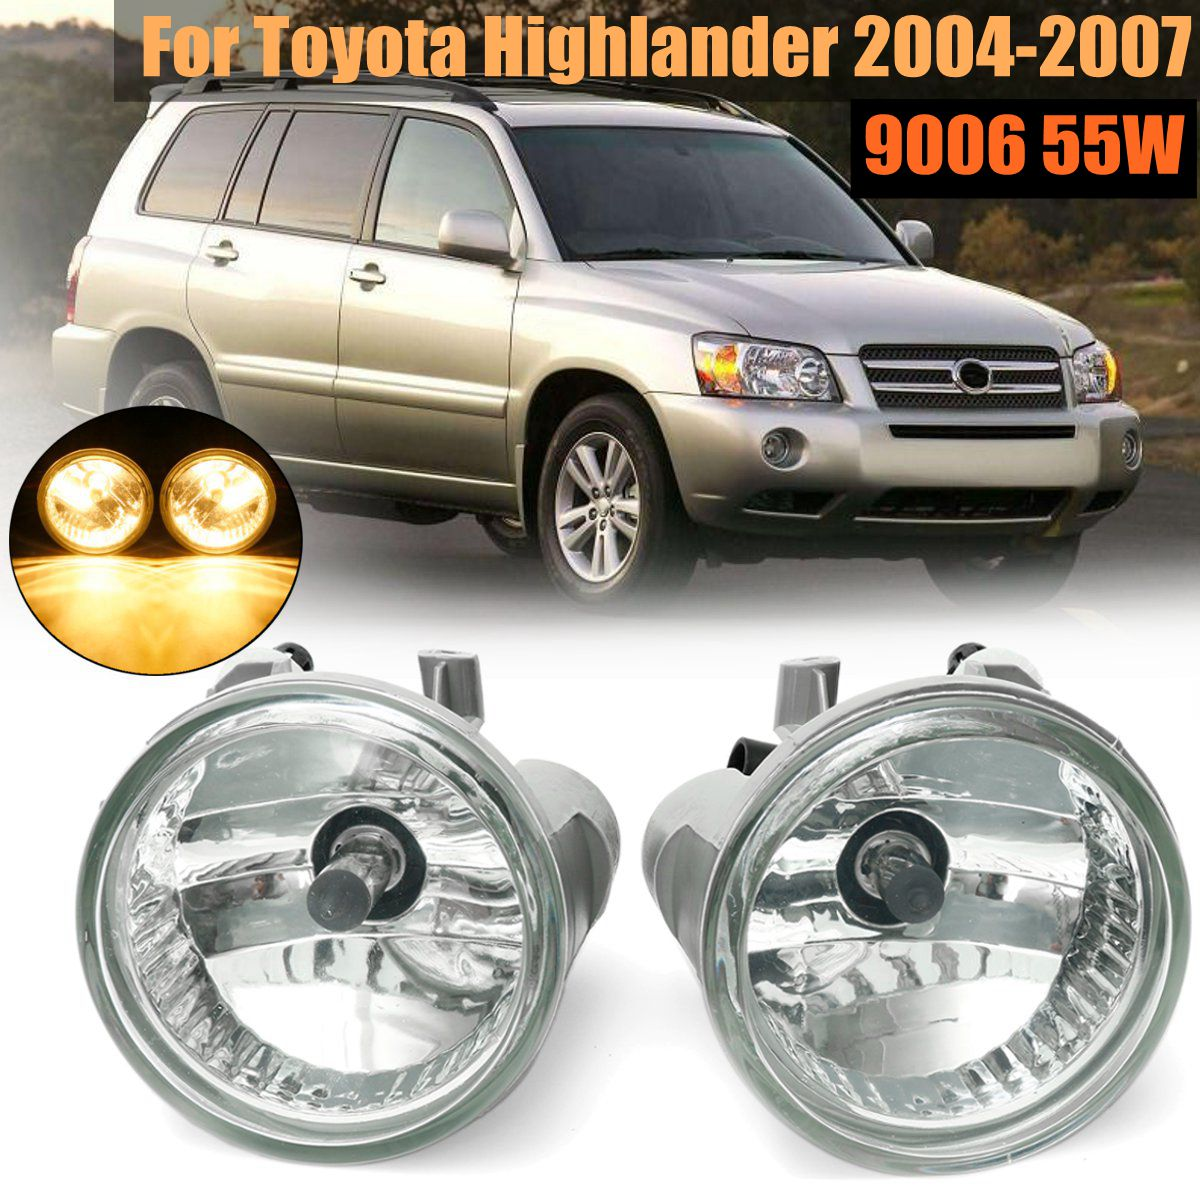 все цены на Pair Left and Right Front Clear Bumper Driving Fog Lights for Toyota Highlander 2004 2005 2006 2007 онлайн